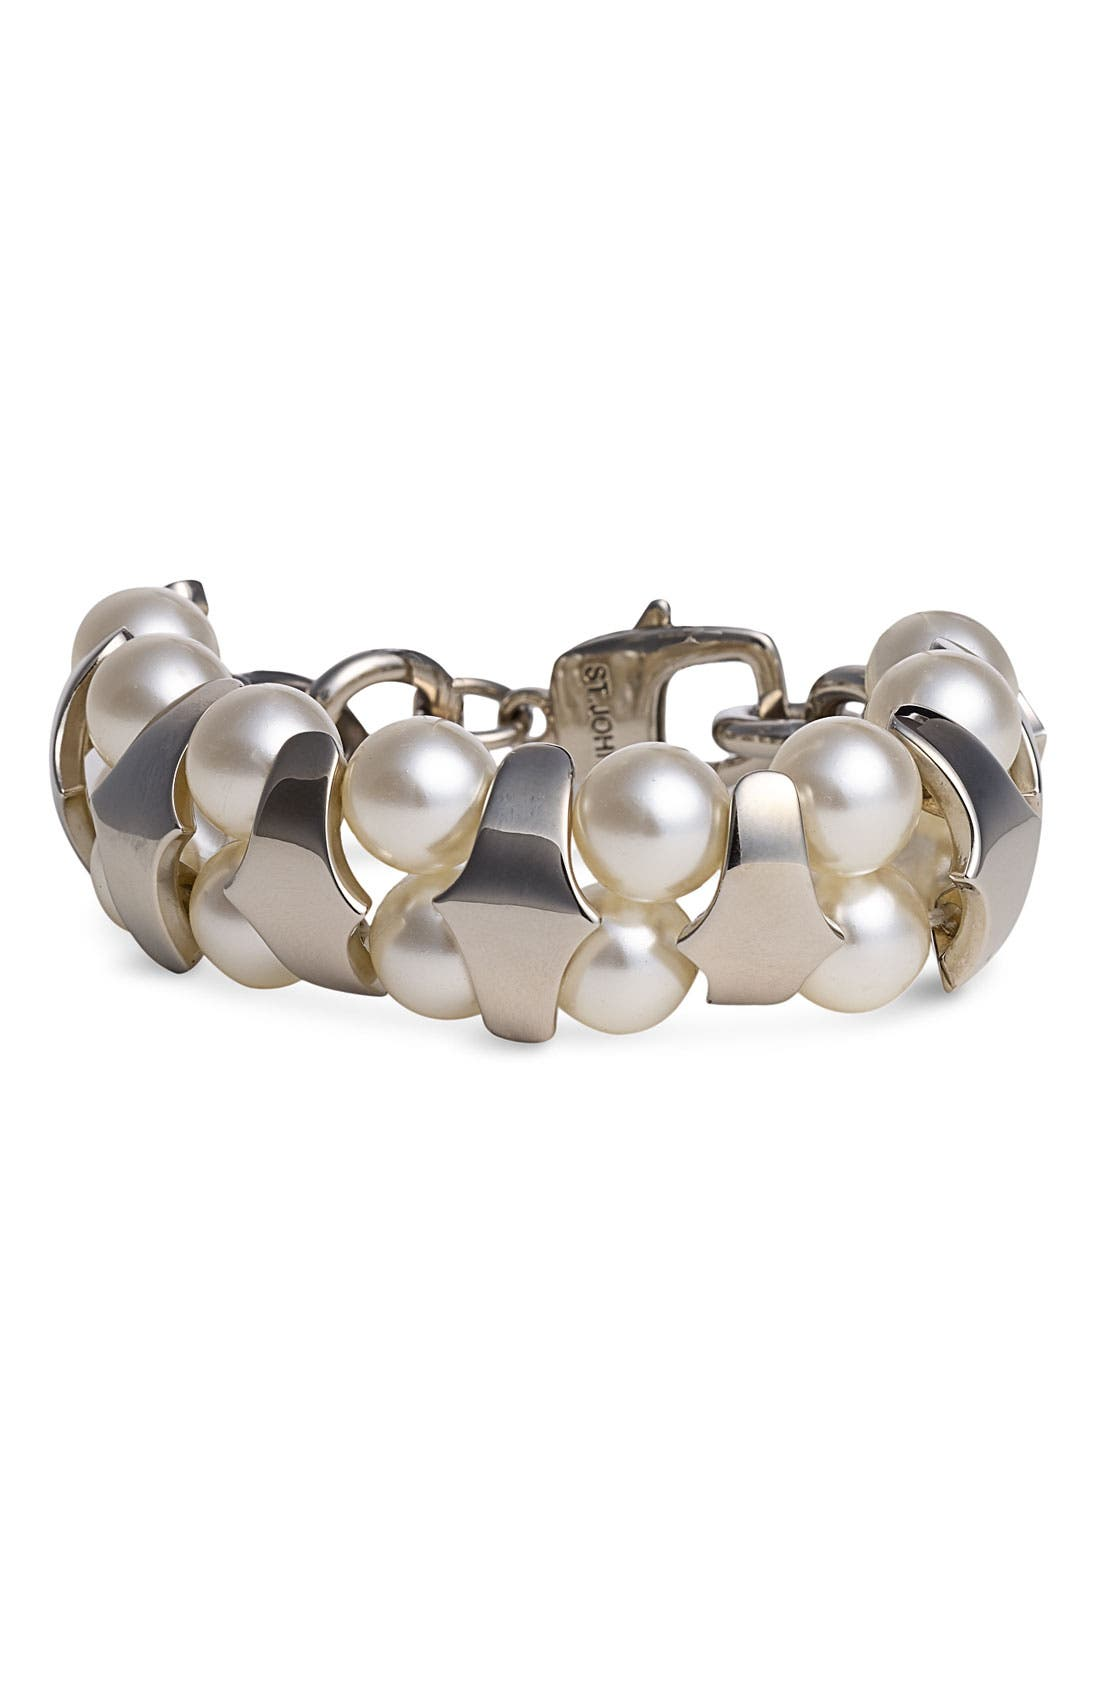 Alternate Image 1 Selected - St. John Collection Chain Link Bracelet with Acrylic Pearls